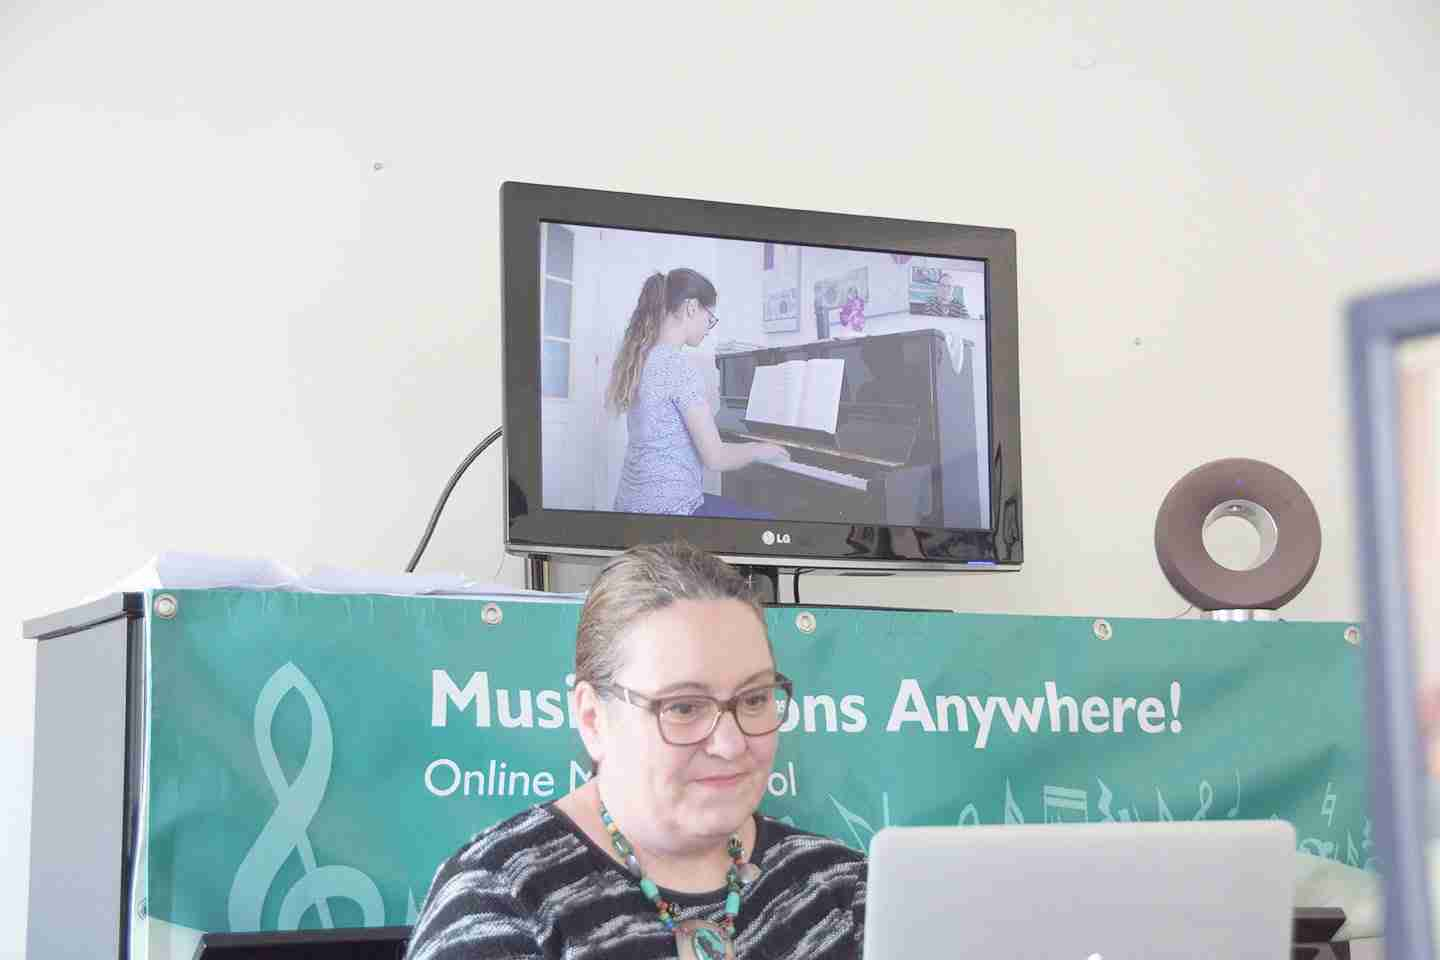 28-music-lessons-anywhere-online-music-lessons-concert-2018